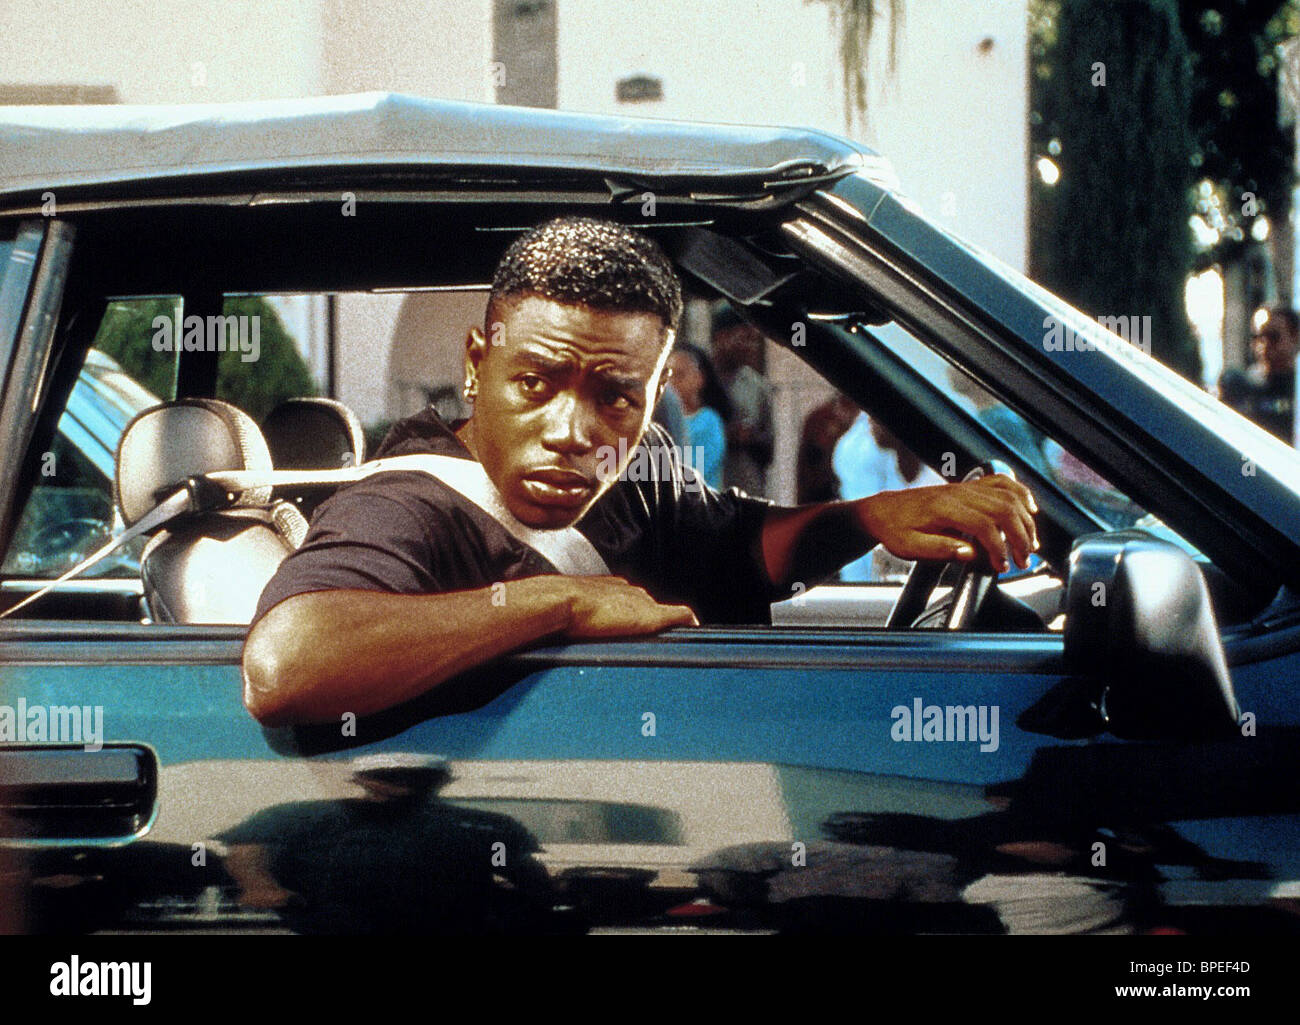 Martin Davis Menace Ii Society 1993 Stock Photo 31052013 Alamy